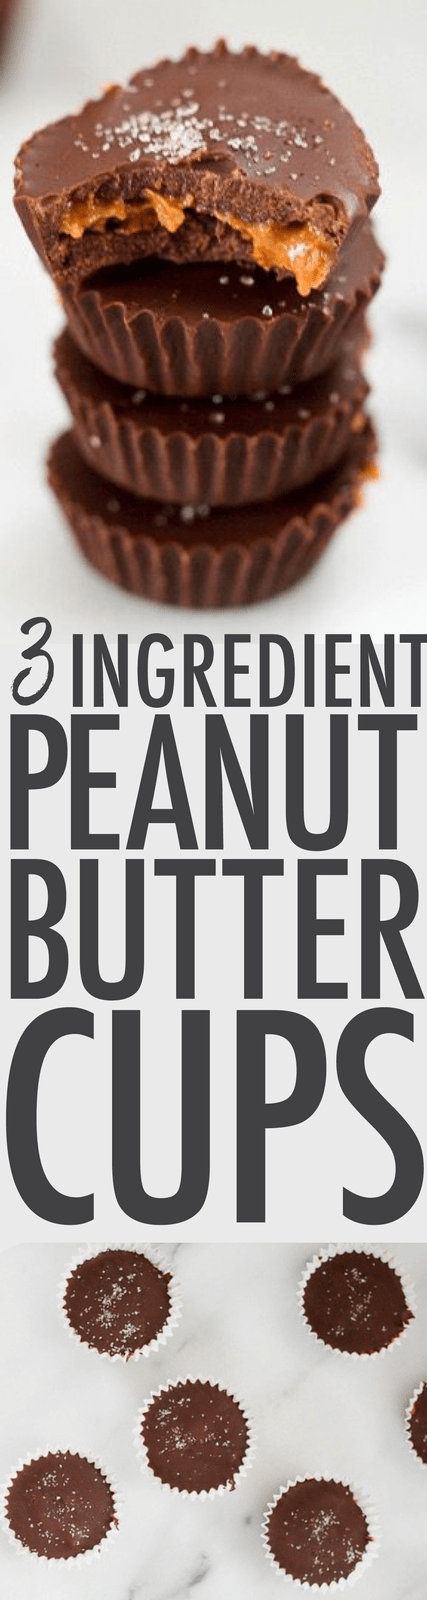 Homemade Peanut Butter Cups made with 3 simple ingredients